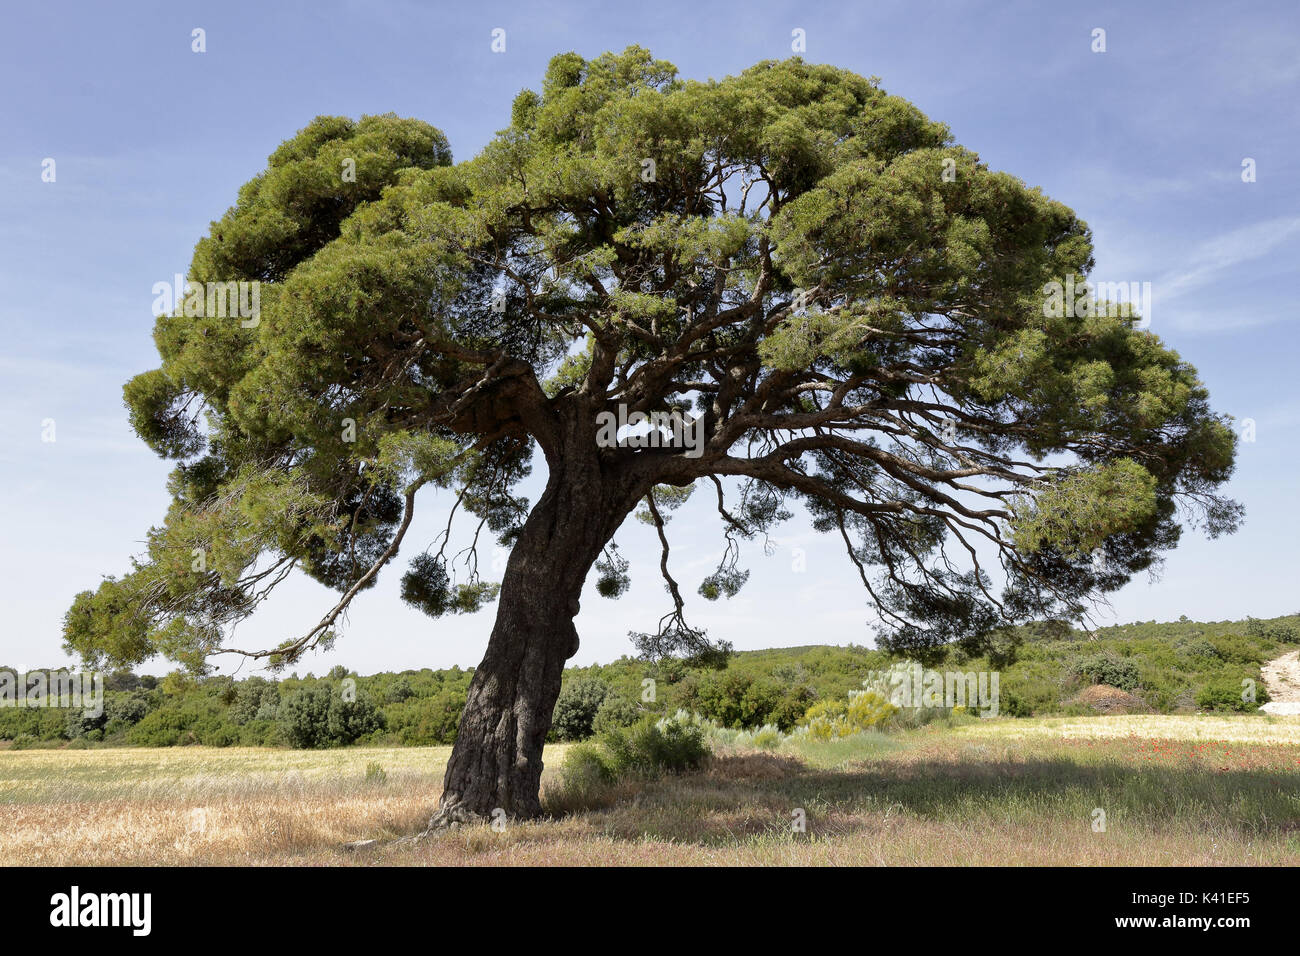 A centuries old big pine tree surrounded by yellow corn fields Stock Photo